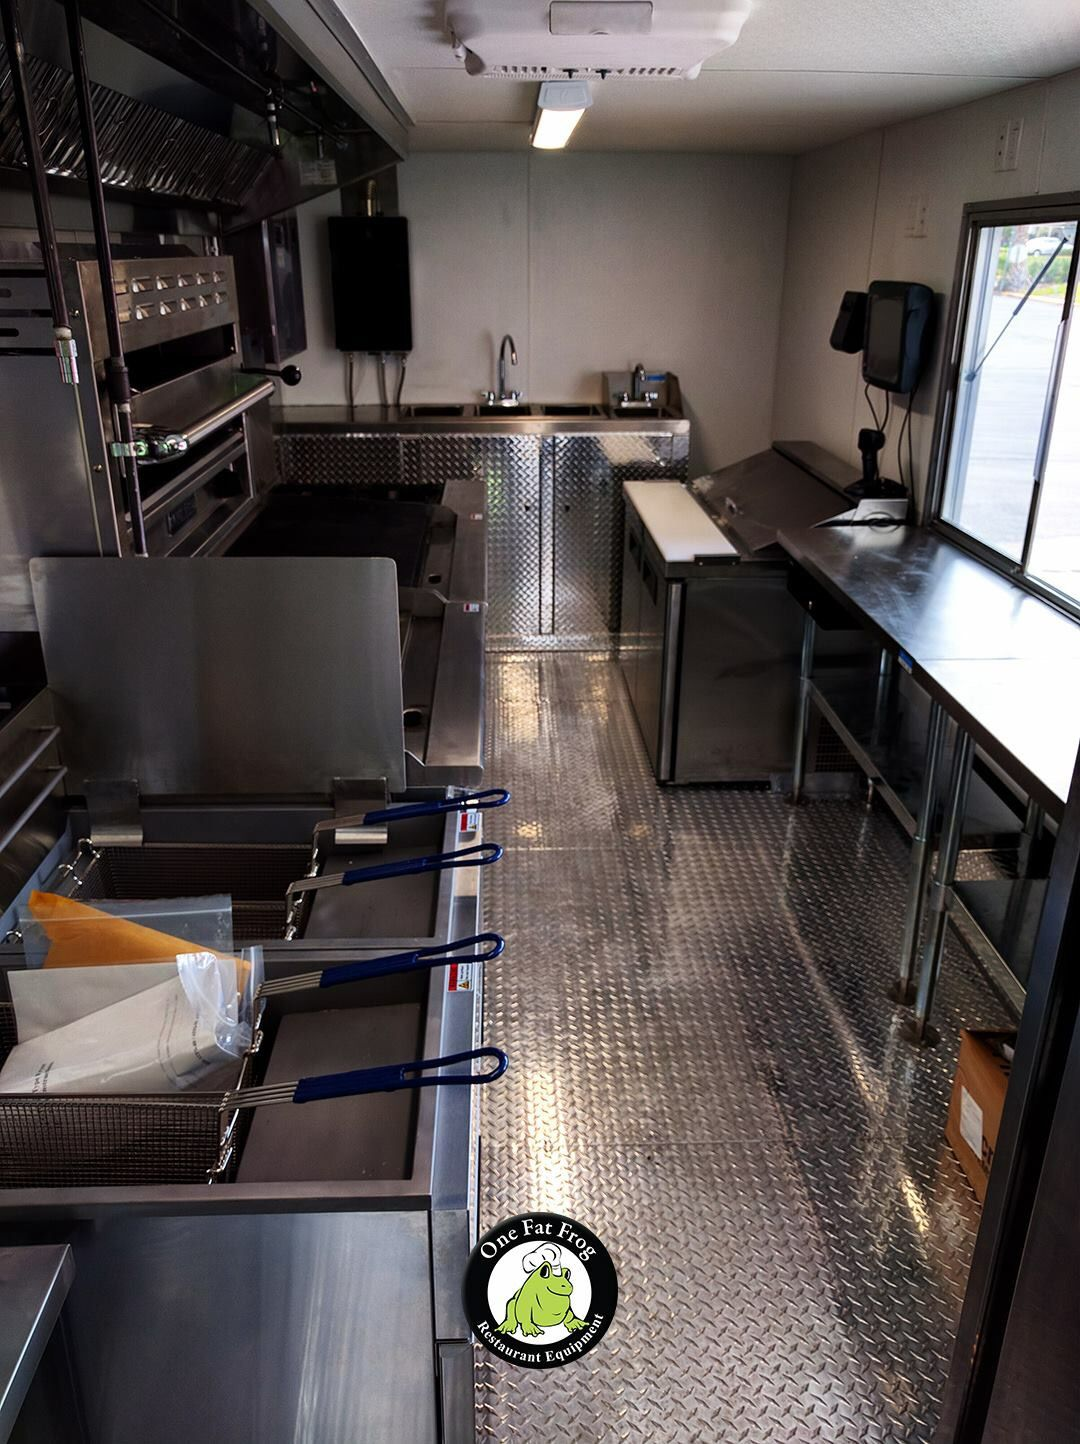 mobile kitchens stone kitchen island interior of a fully equipped workhorse food trailer at one fat frog